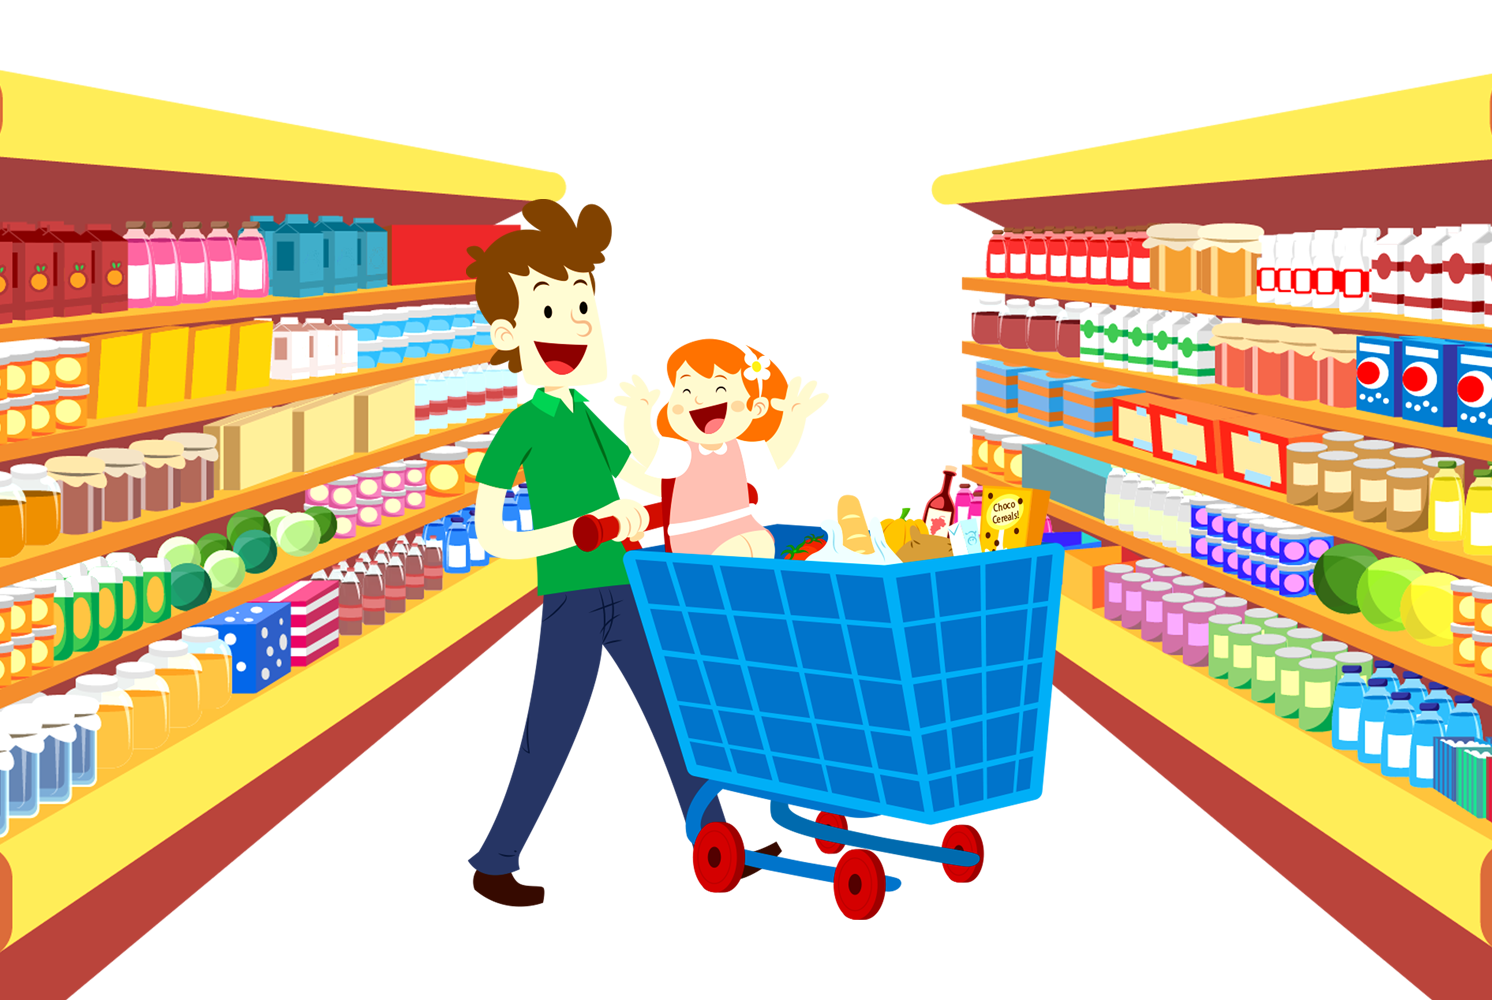 Supermarket background clipart vector library stock Grocery shopping cartoon clipart images gallery for free ... vector library stock